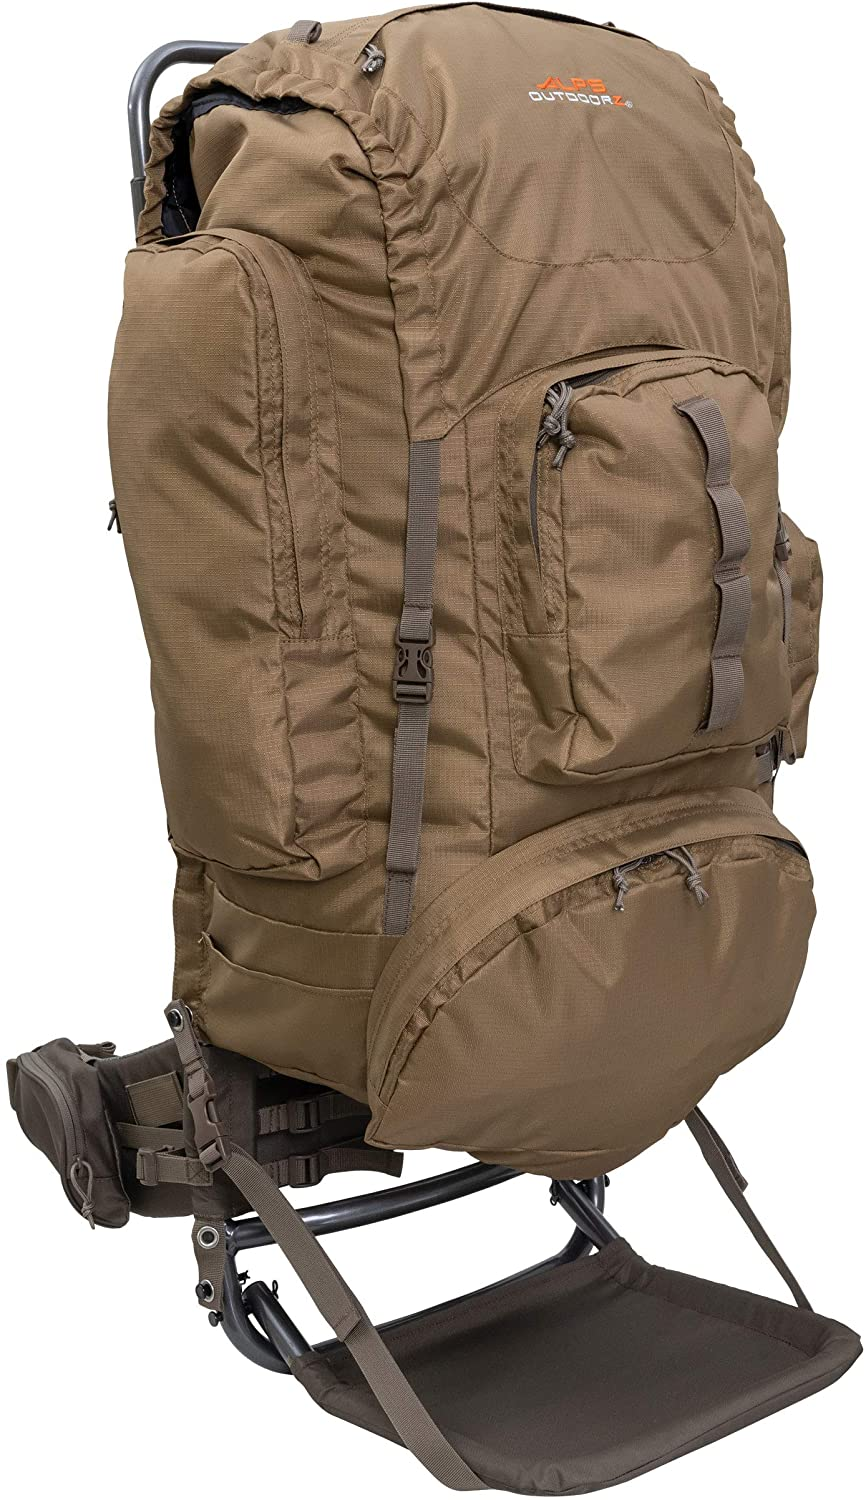 ALPS OutdoorZ Commander Pack BagMystery Ranch Metcalf Hunting Backpack, best hunting backpacks